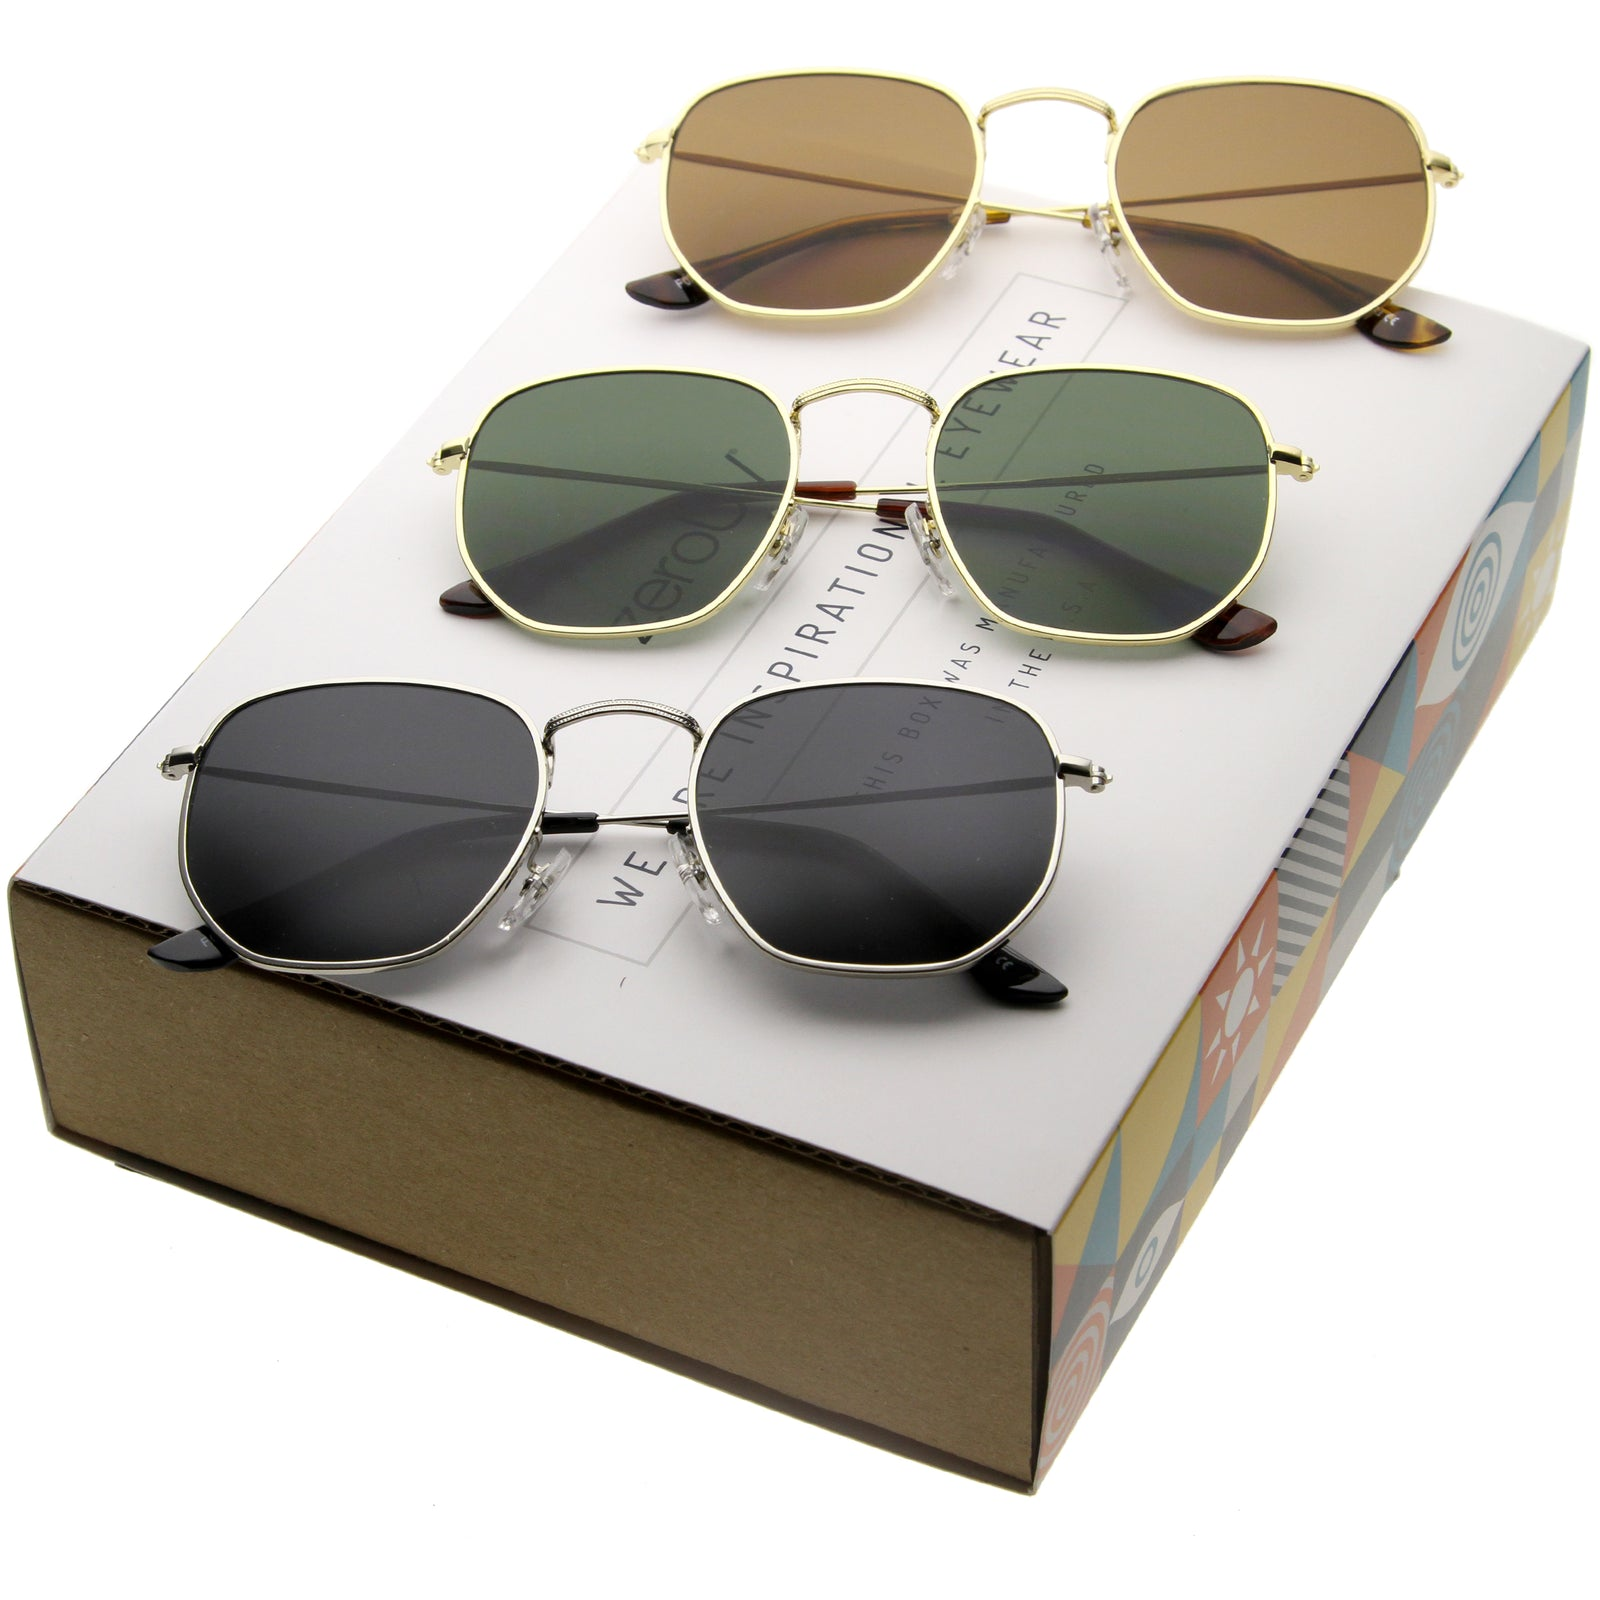 9c0913c23fd Retro Modern Hexagon Shape Metal Flat Lens Sunglasses C455  Promo Box